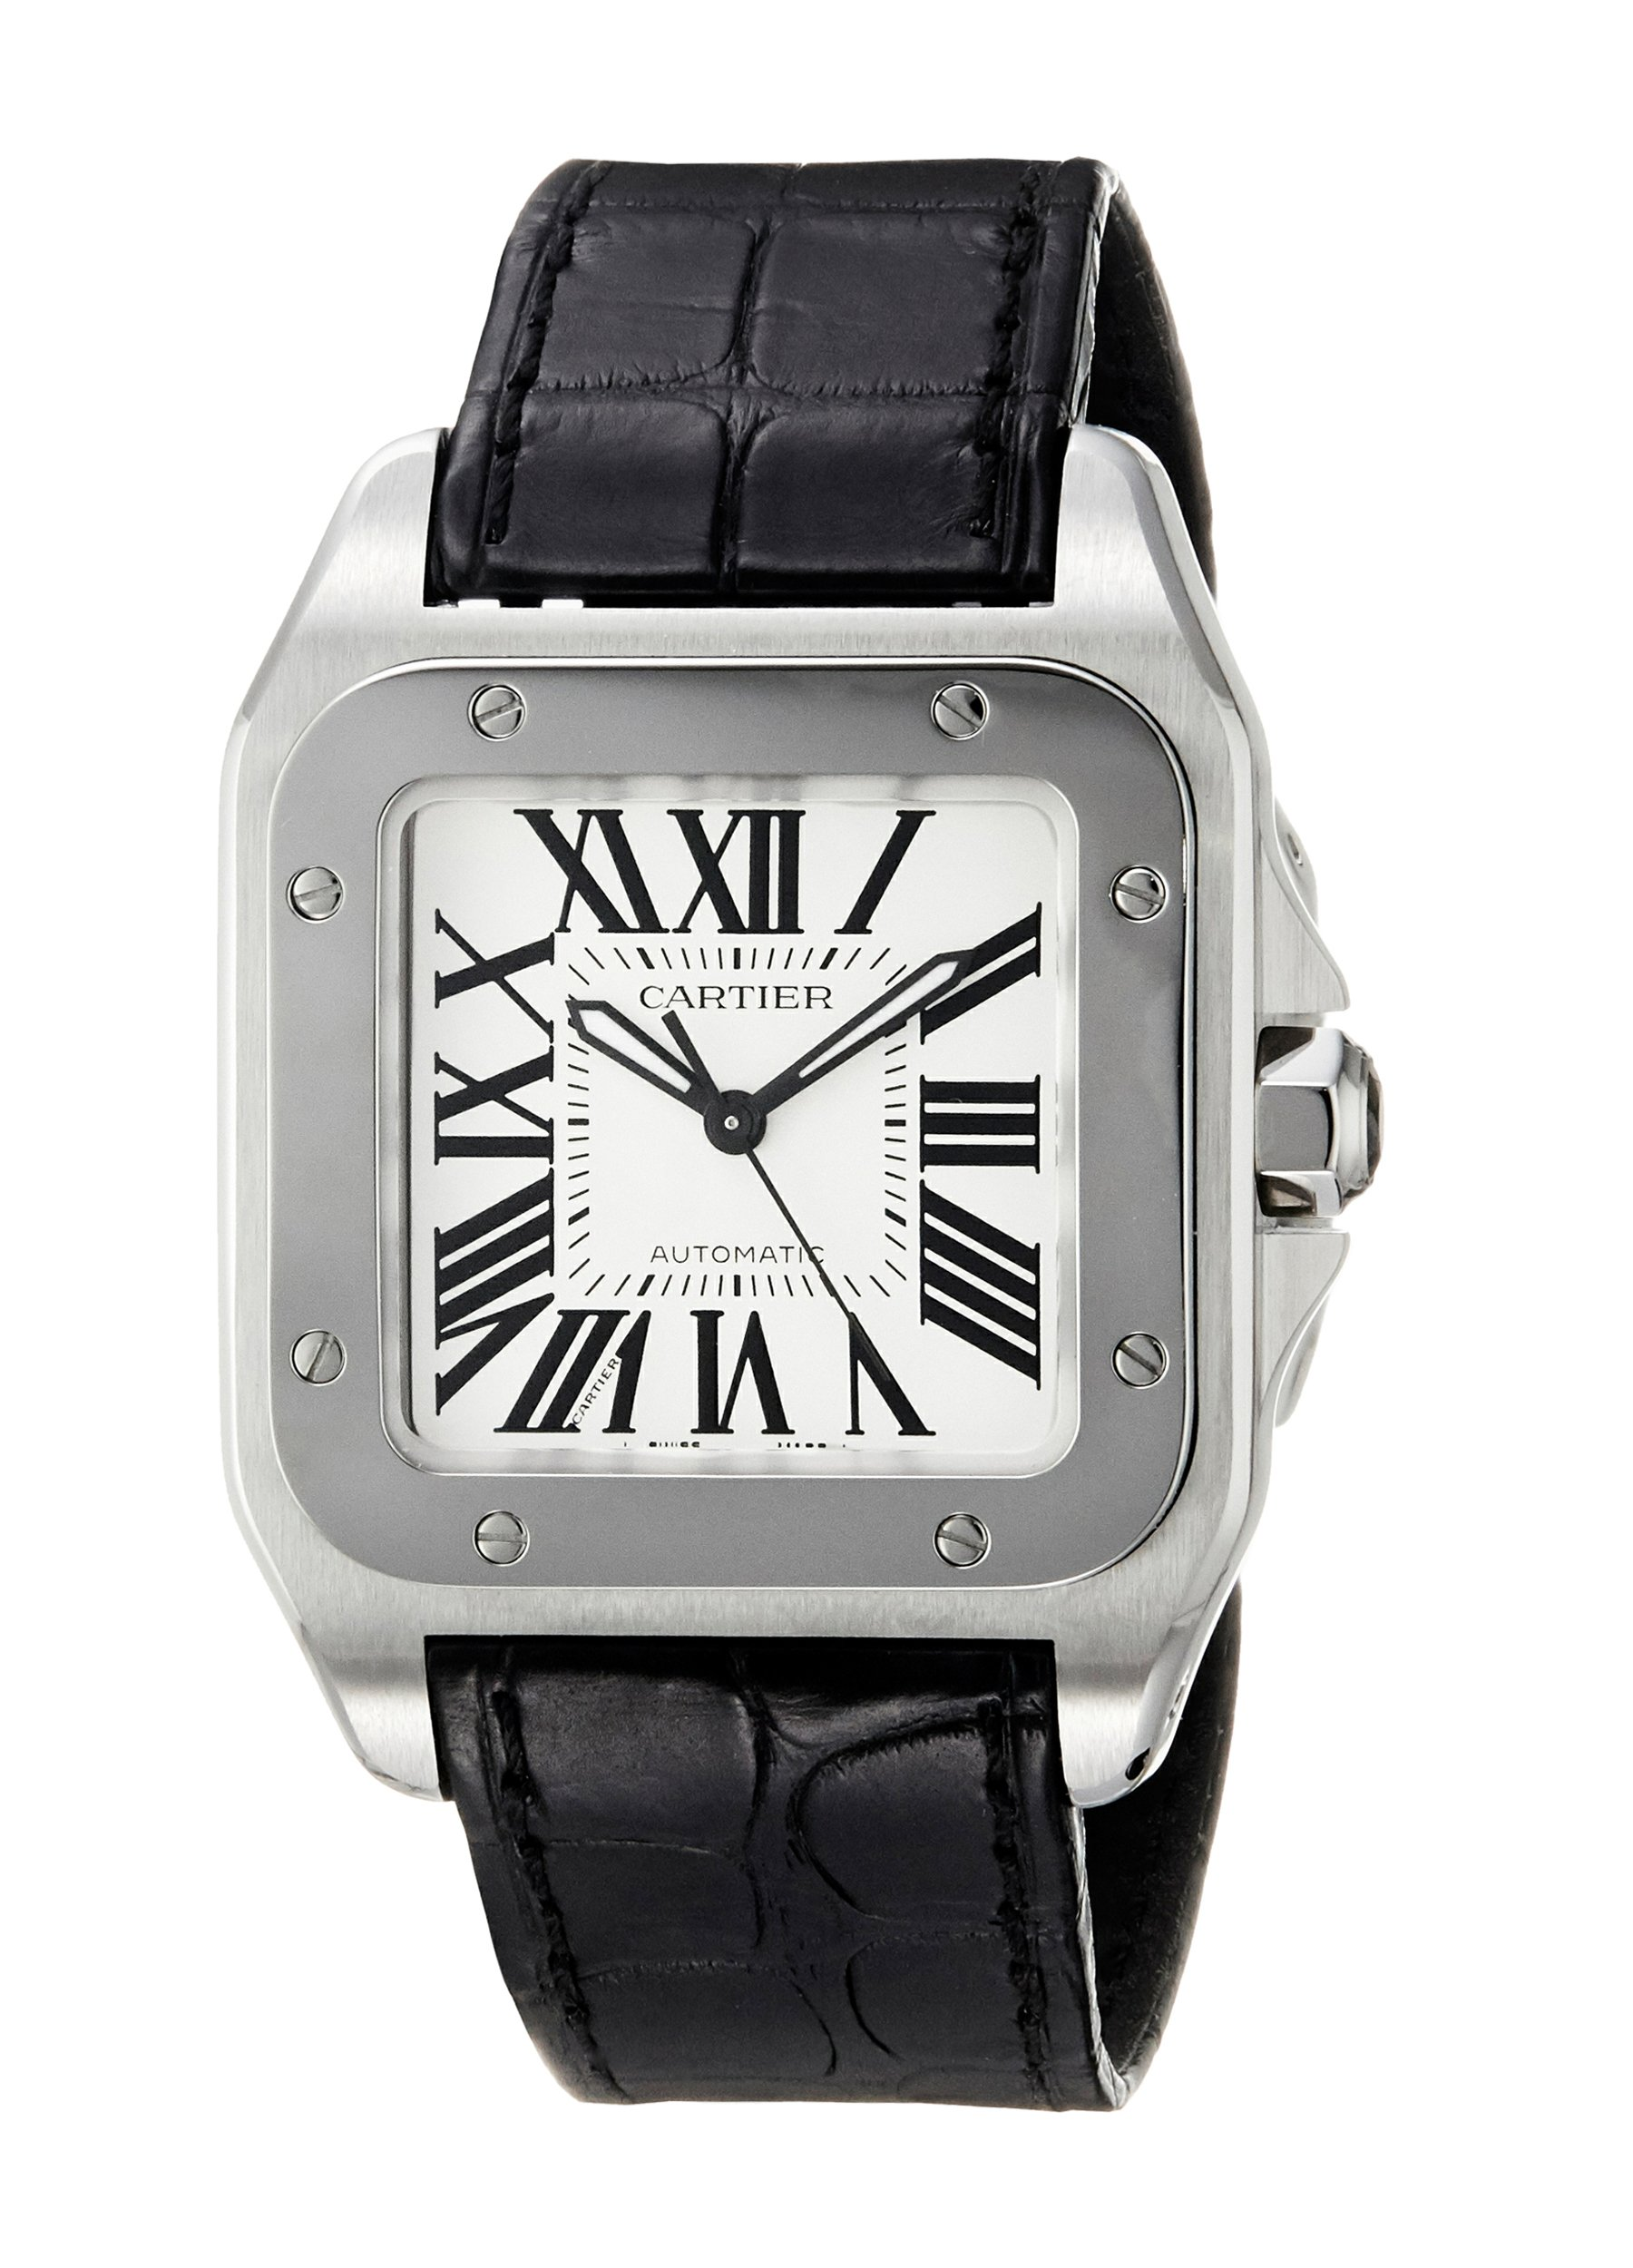 B000SBN6CU B000SBN6CU To UK £5283 US $4915 Cartier Unisex Santos 100 Black Leather Band Steel Case Automatic Silver-Tone Dial Analog Watch W20106X8